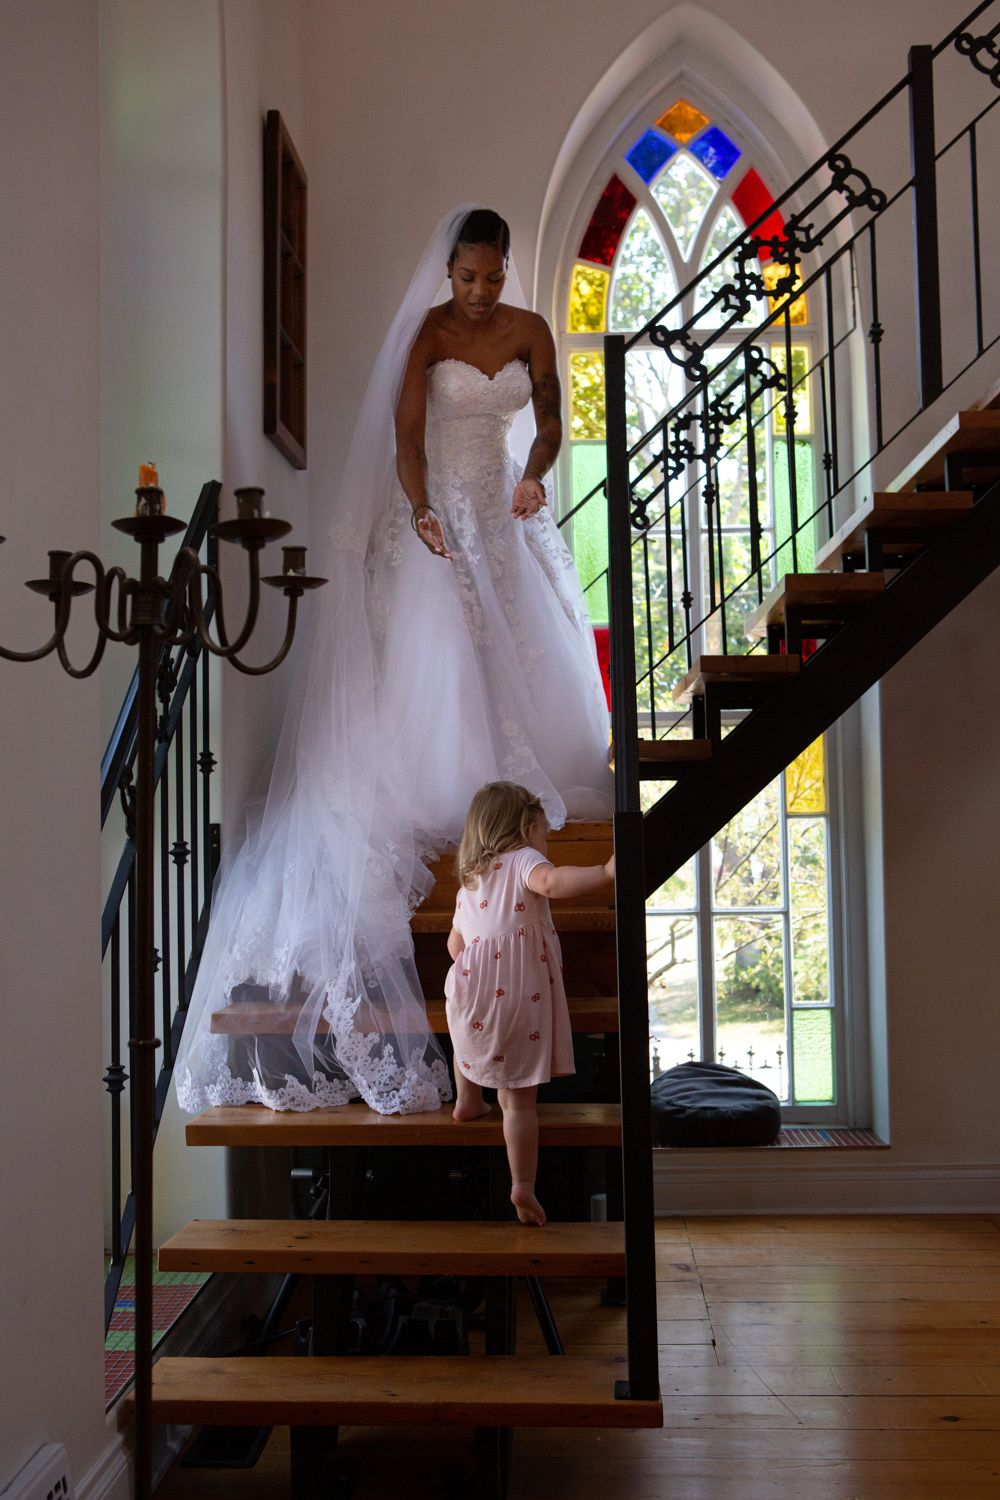 Kawartha Lakes Little brick church manilla, ontario bride and flower girl